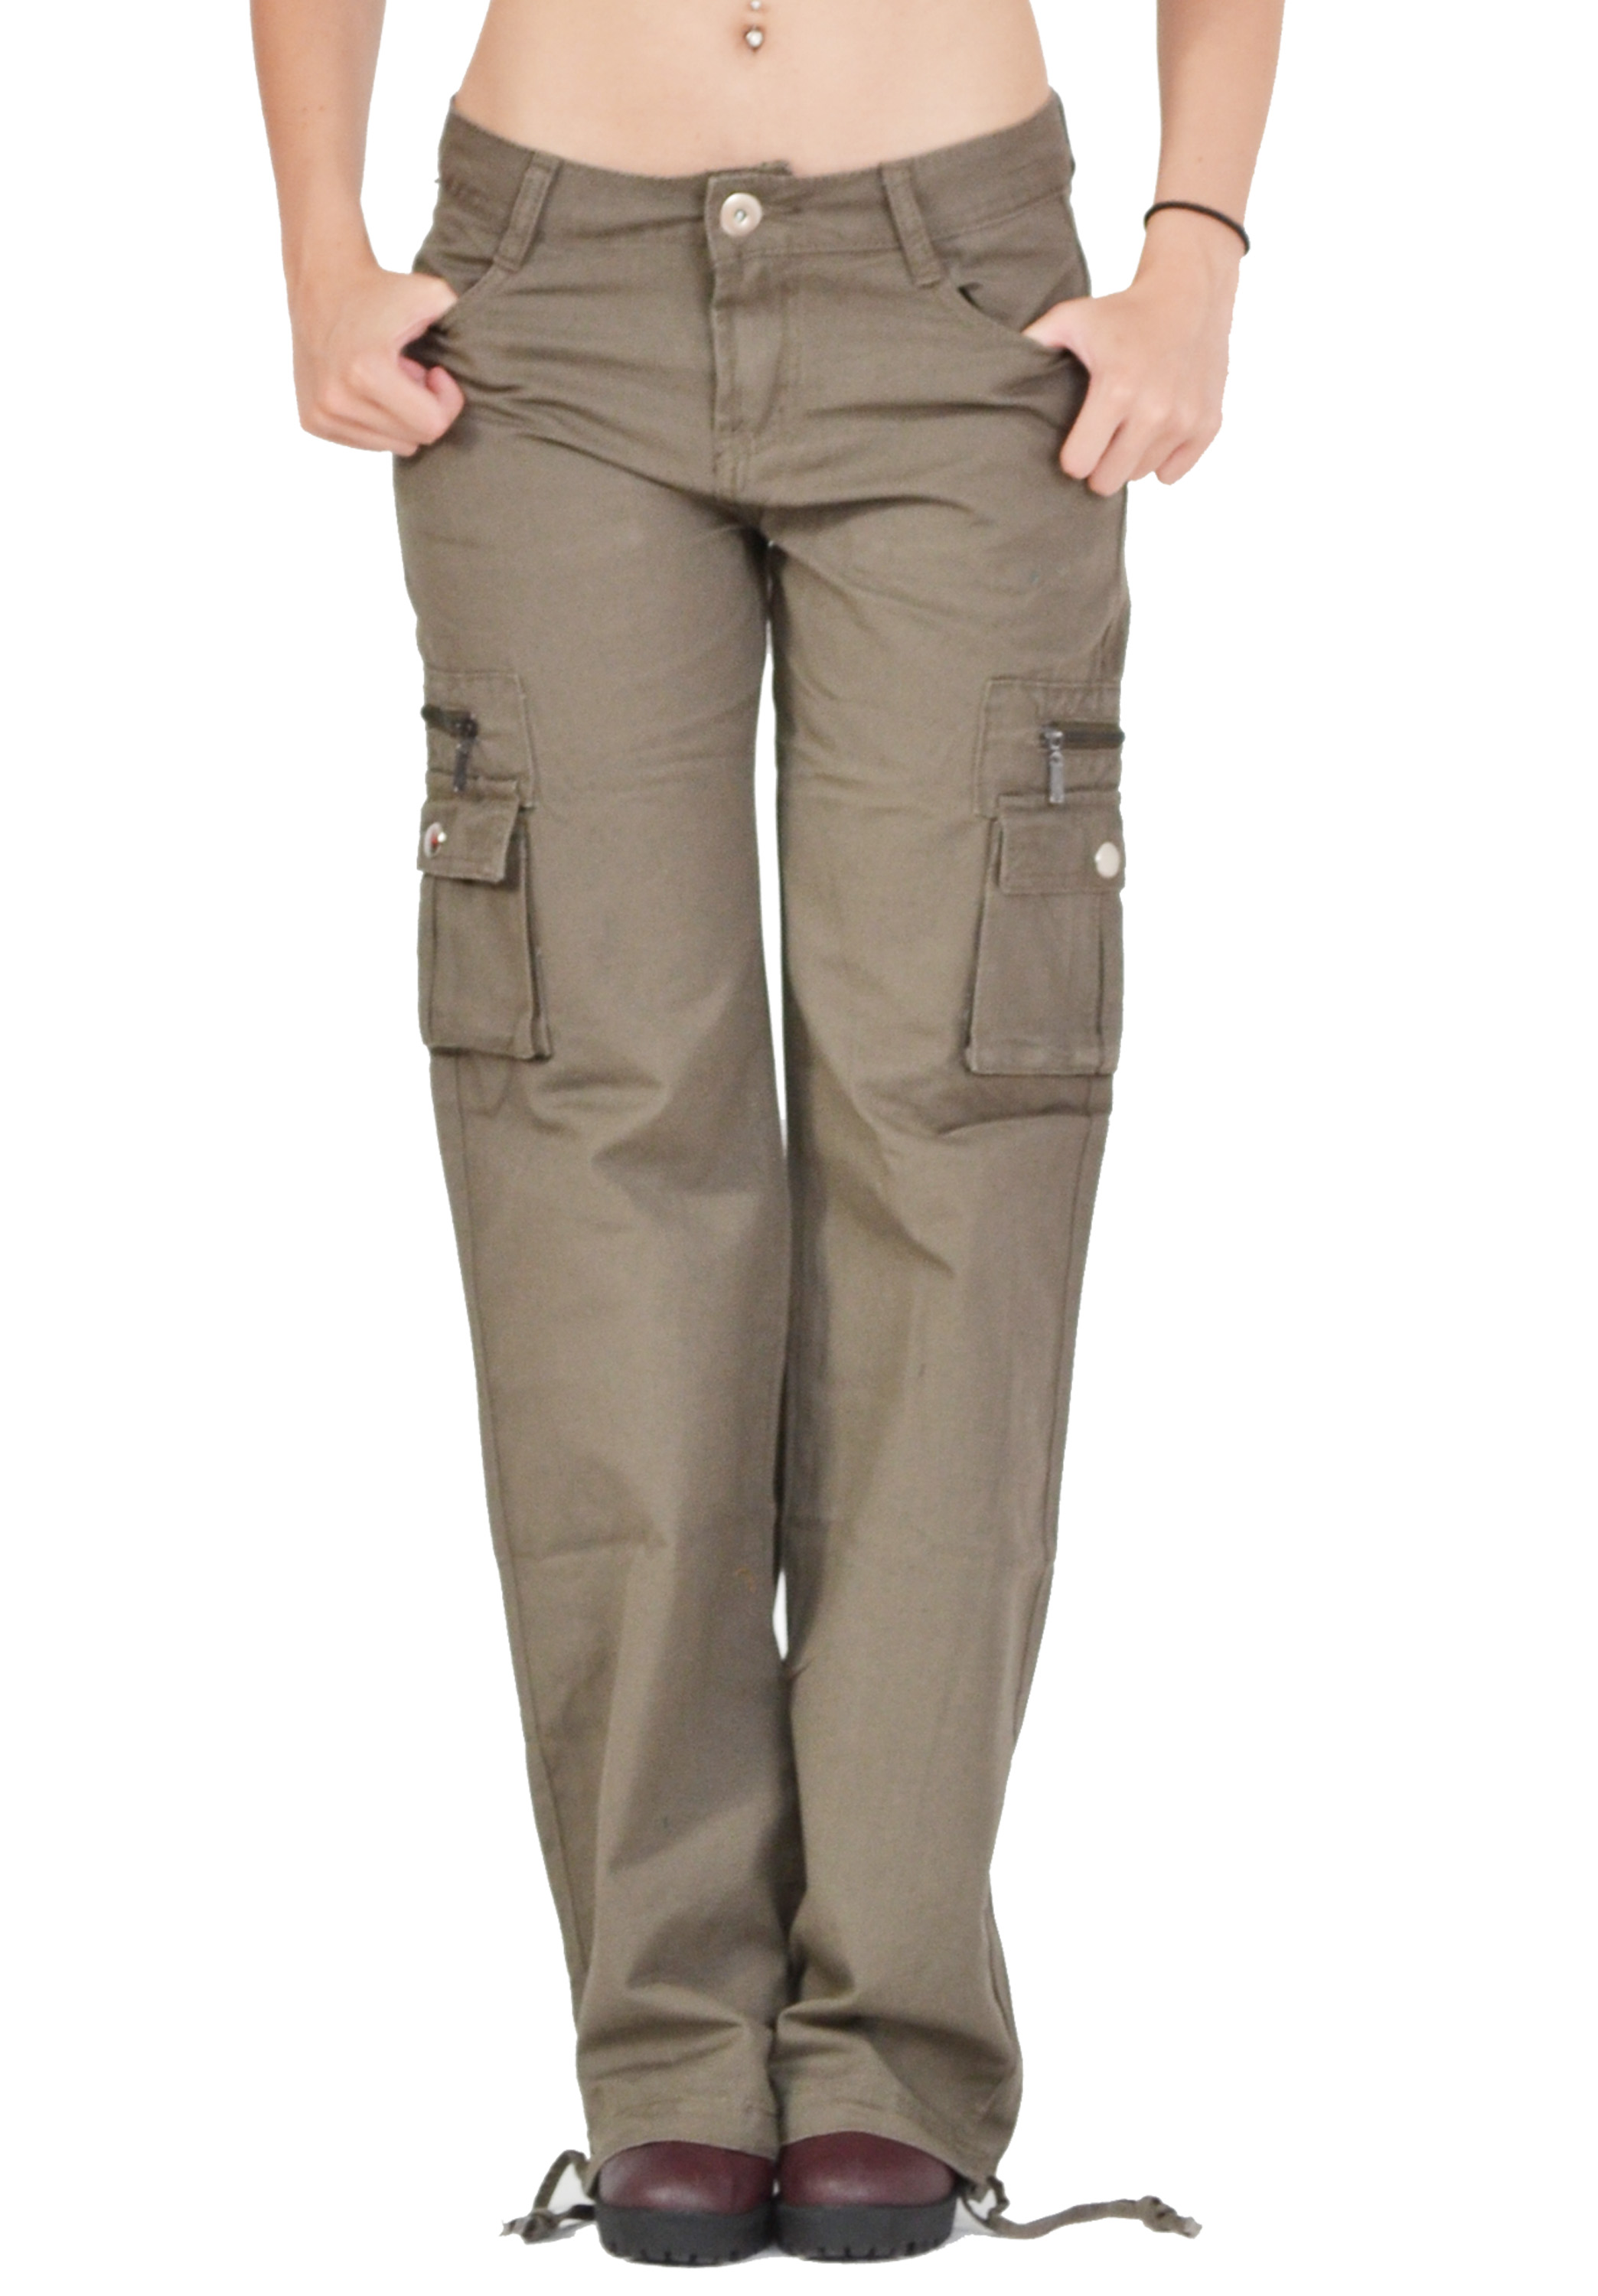 Model Women39s Army Cargo Outdoor Hiking Straight Mid Waist Sports Casual